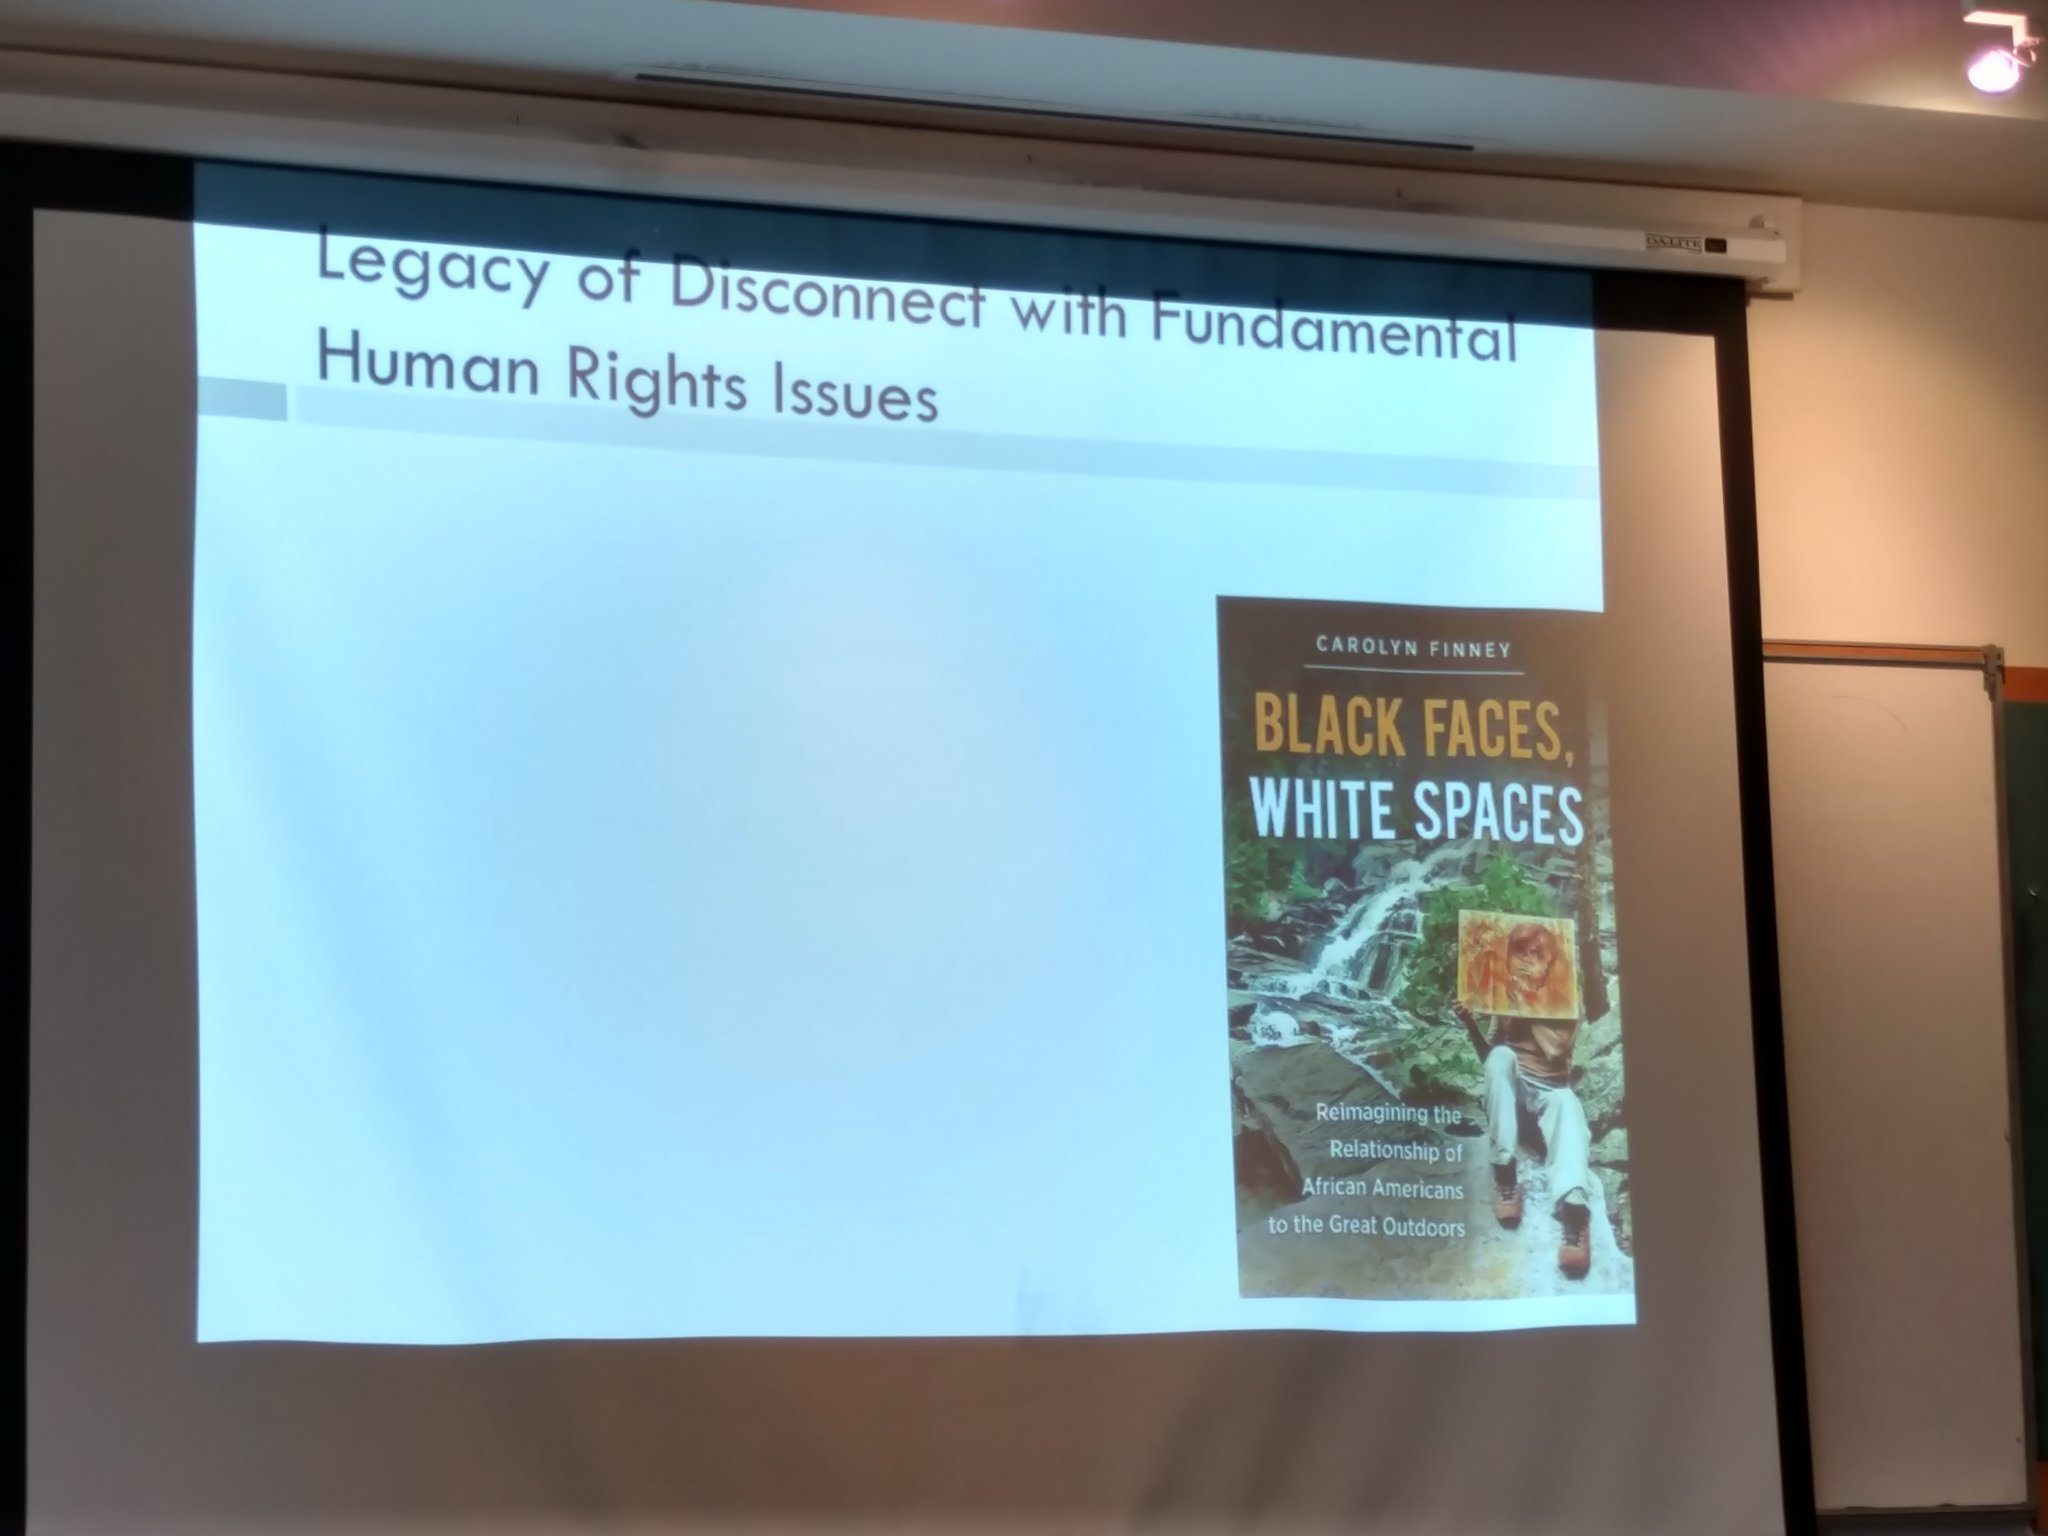 Carolyn Finney's book Black Faces, White Spaces. @cynth_malone recommends book! SACNISTAs, go get it! #SCSCB #ucsc @JustineASmith @ucsc https://t.co/syBQ9L79QI